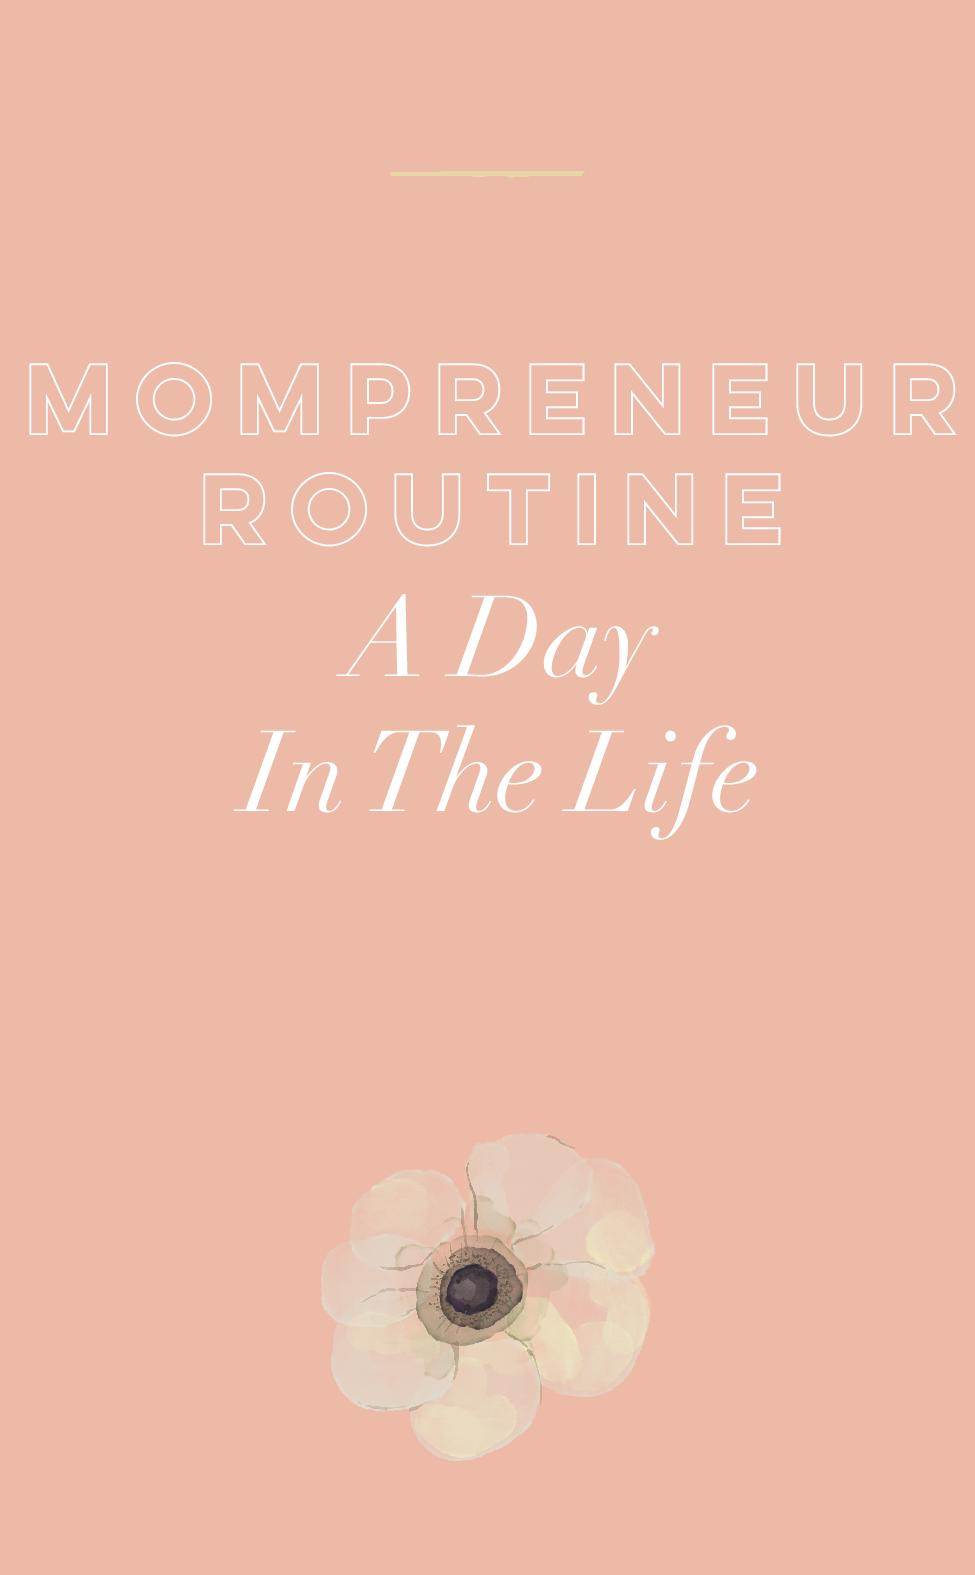 Mompreneur Routine - A Day In The Life.jpg